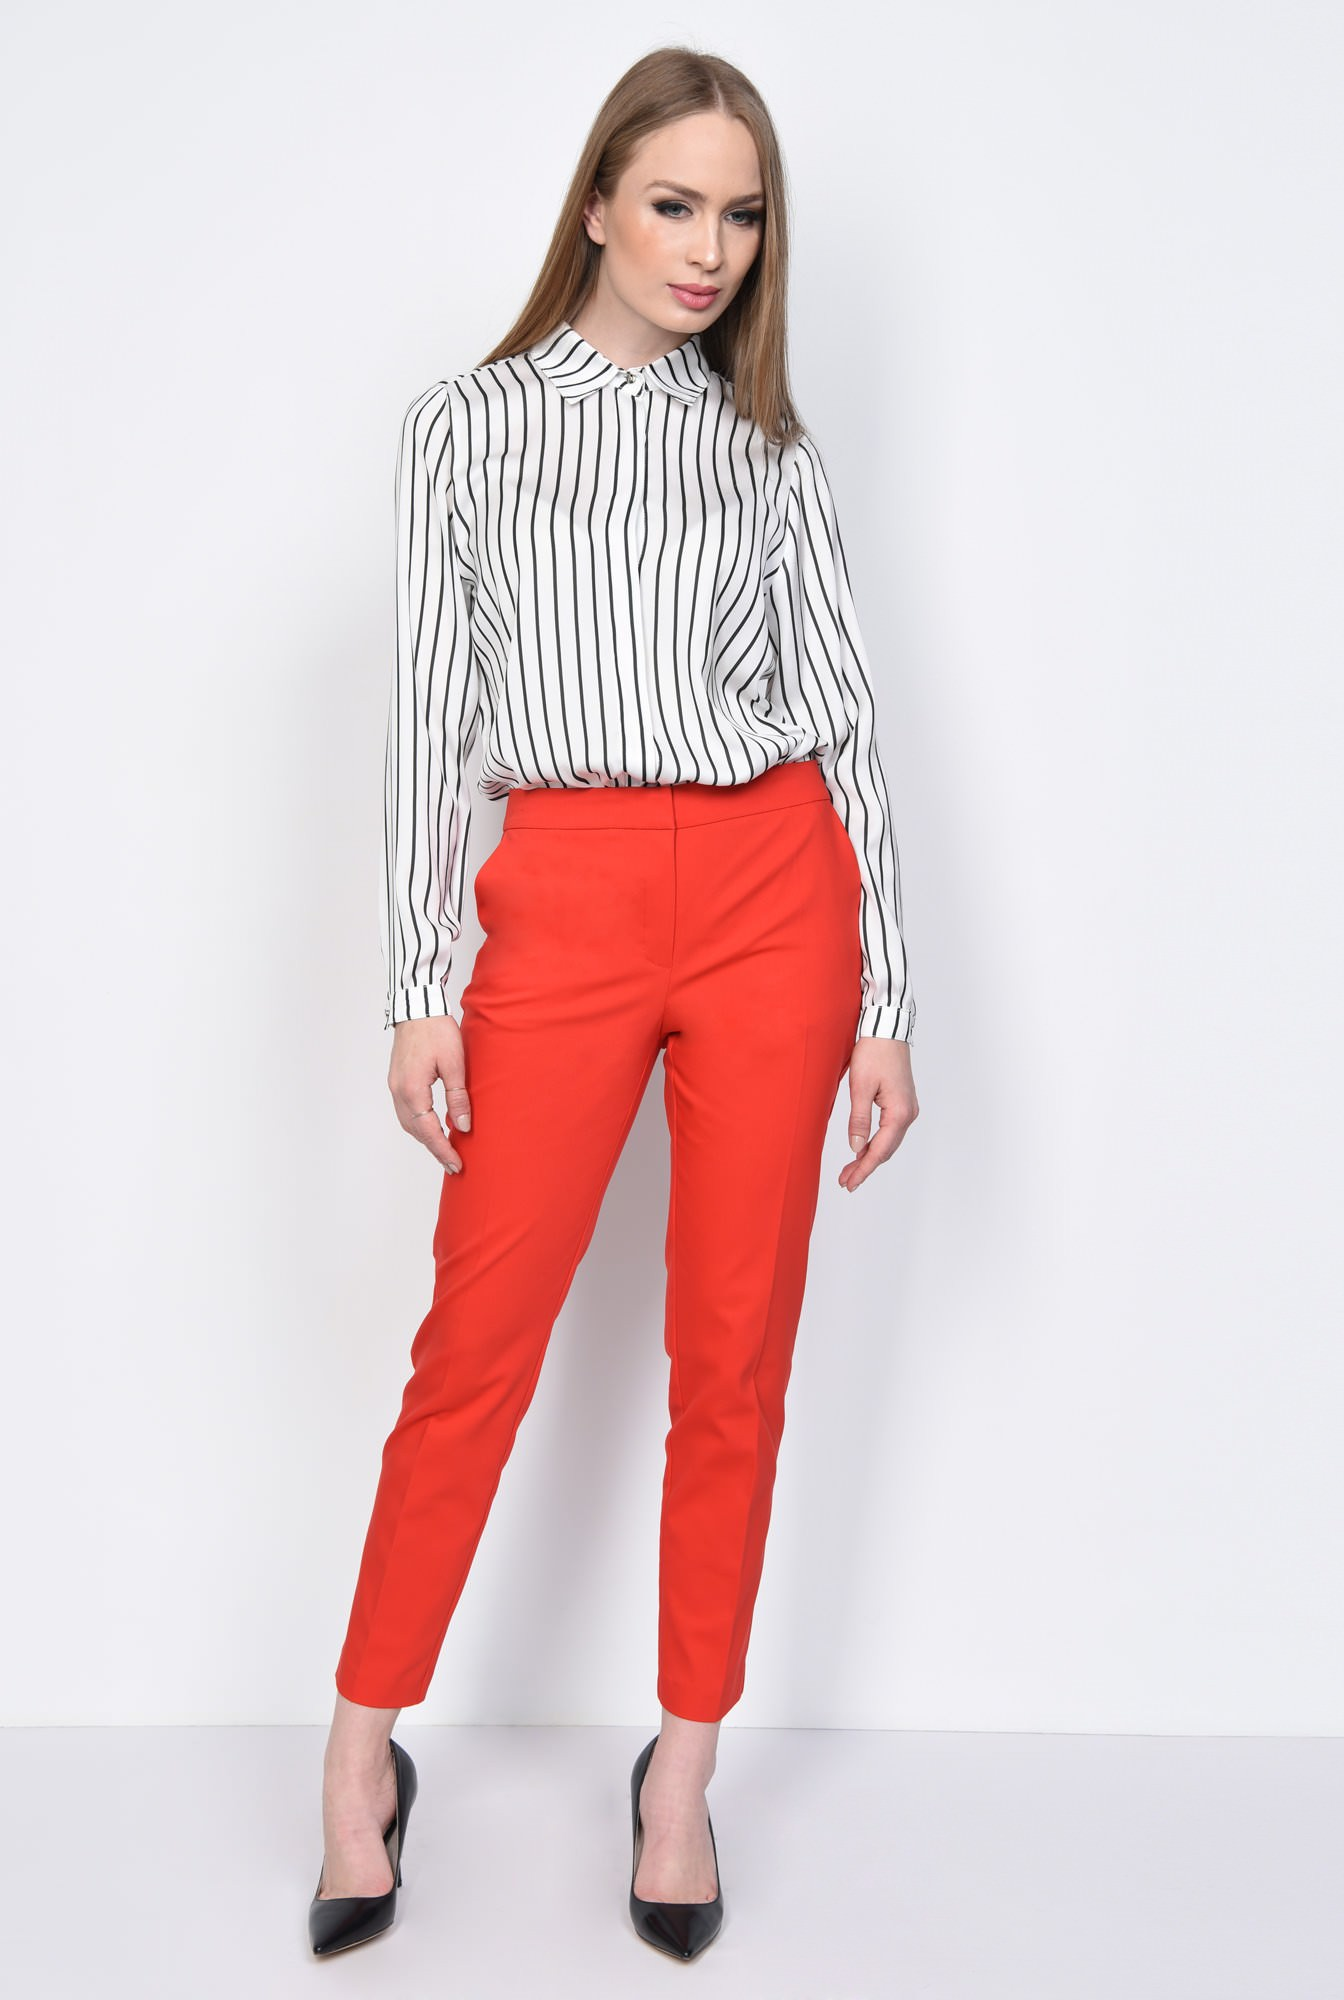 3 - PANTALON OFFICE CONIC PT 144-ROSU